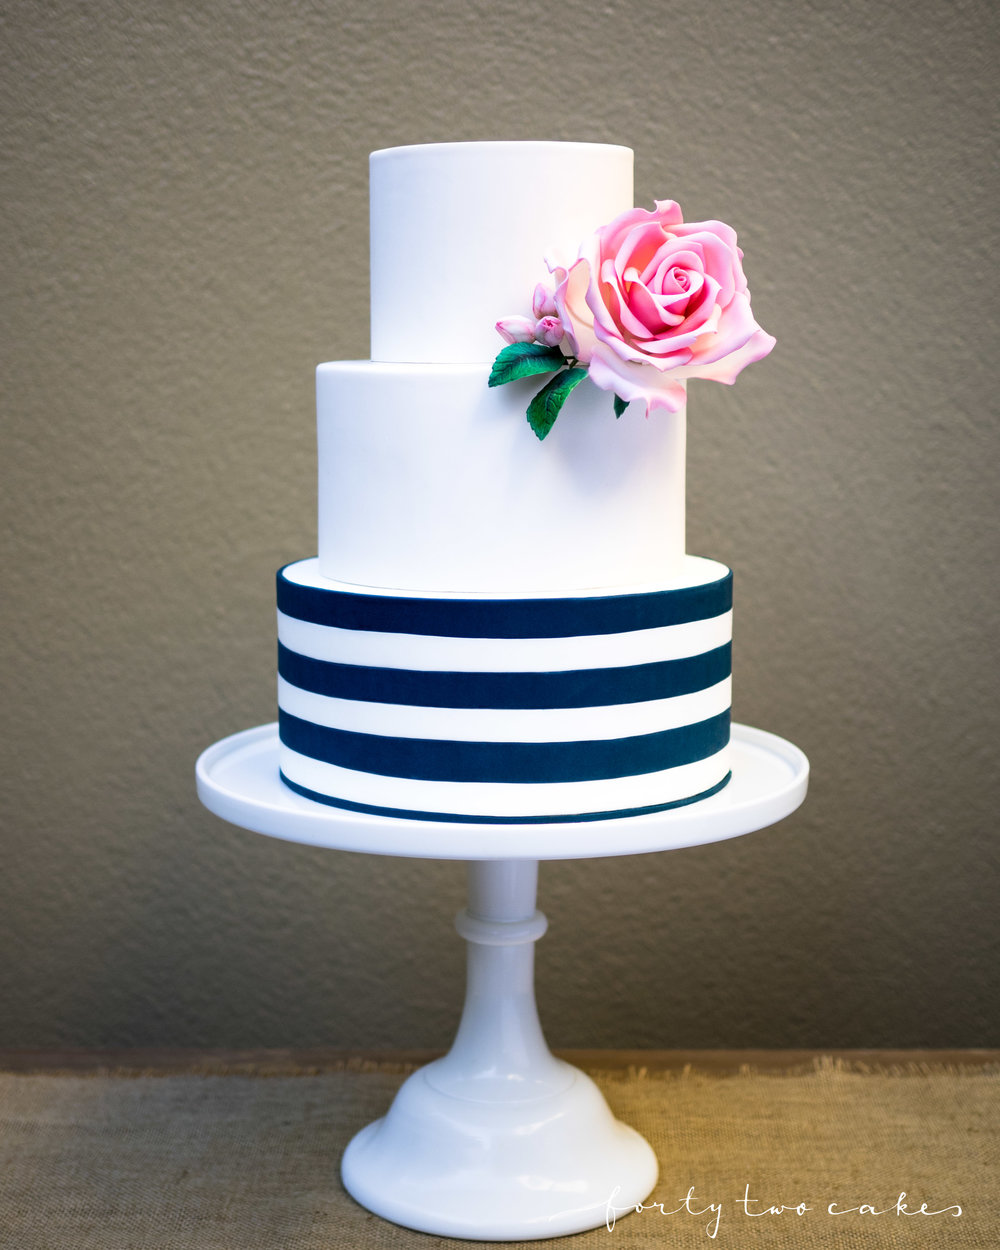 Forty-Two Cakes - Fondant-04-2.jpg